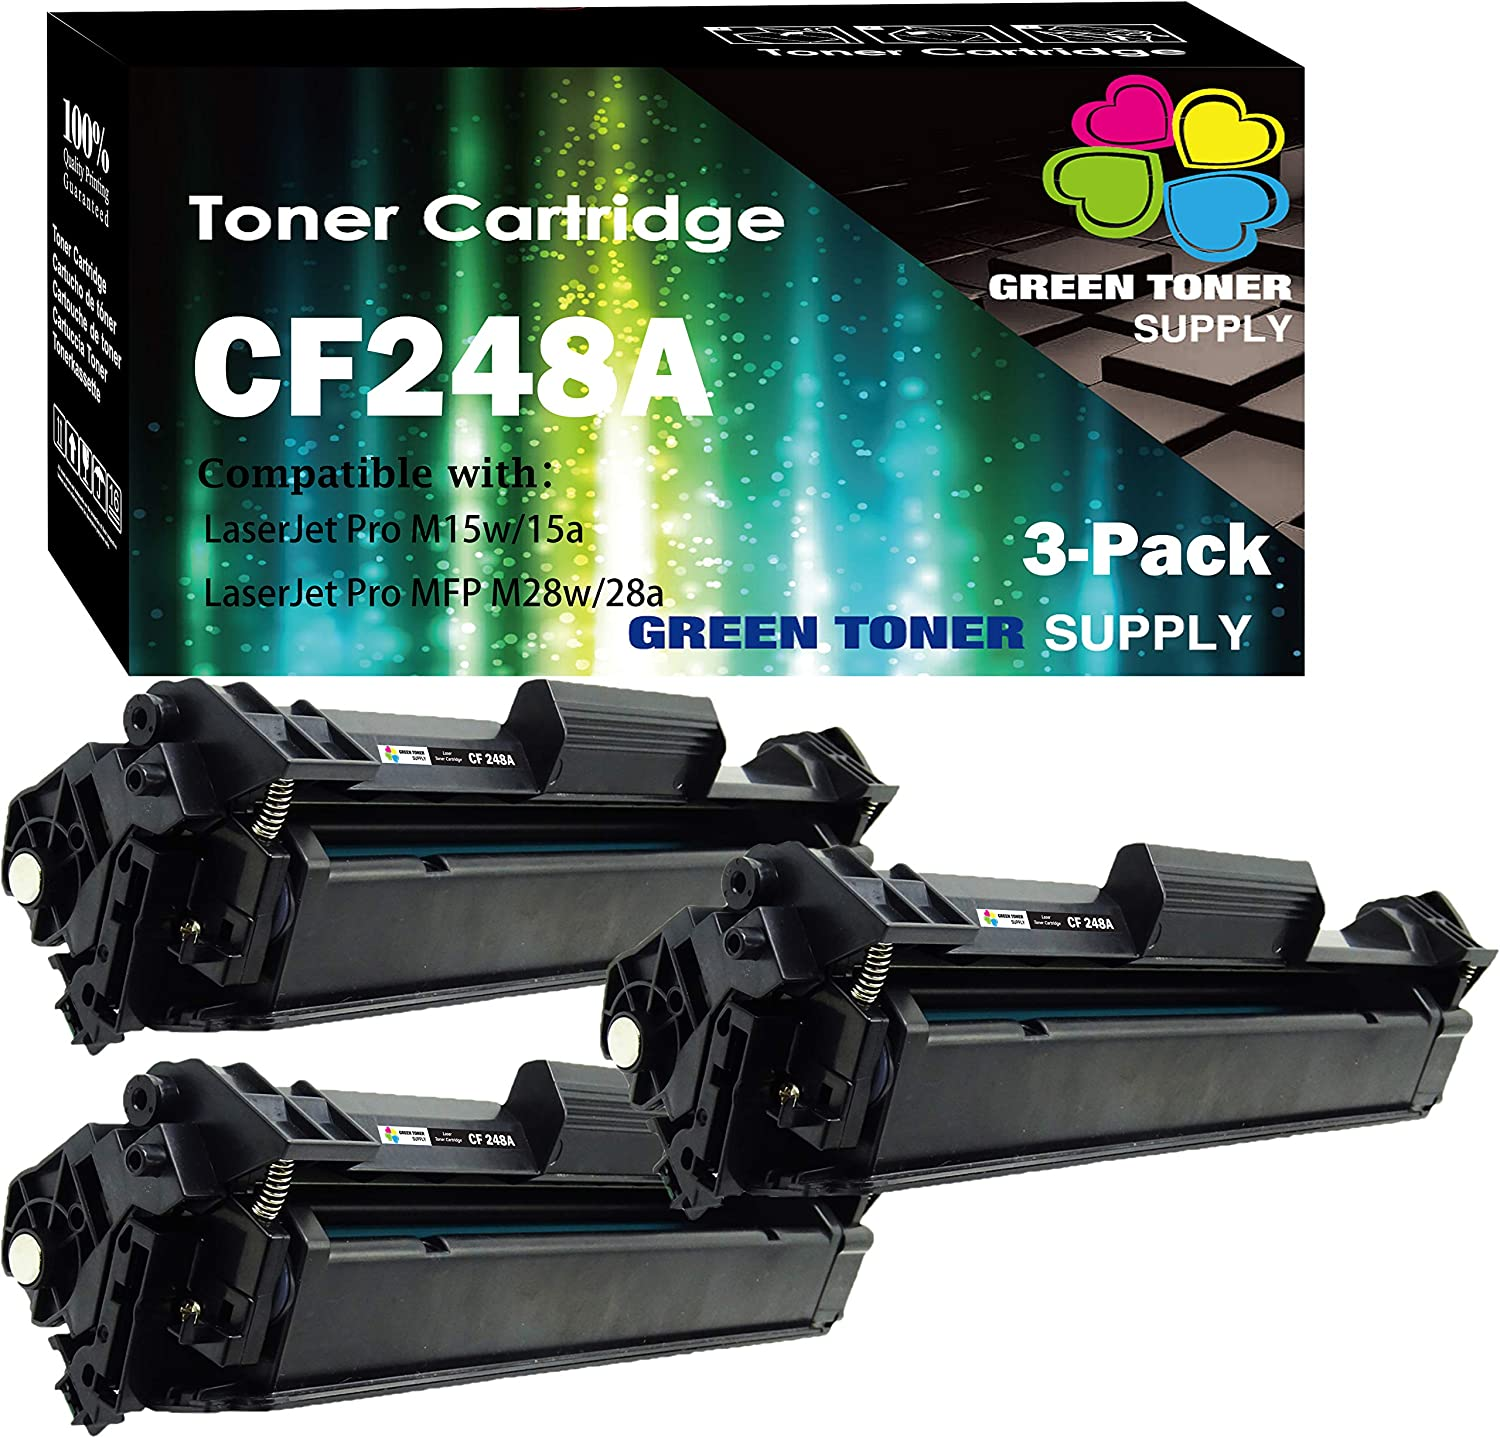 (3-Pack) Compatible 48A CF248A Toner Cartridge 248A Used for HP Laserjet Pro HP Laserjet Pro M15w M15a M16a M16w MFP M29w MFP M29a MFP M28w MFP M28a Printer, by GTS